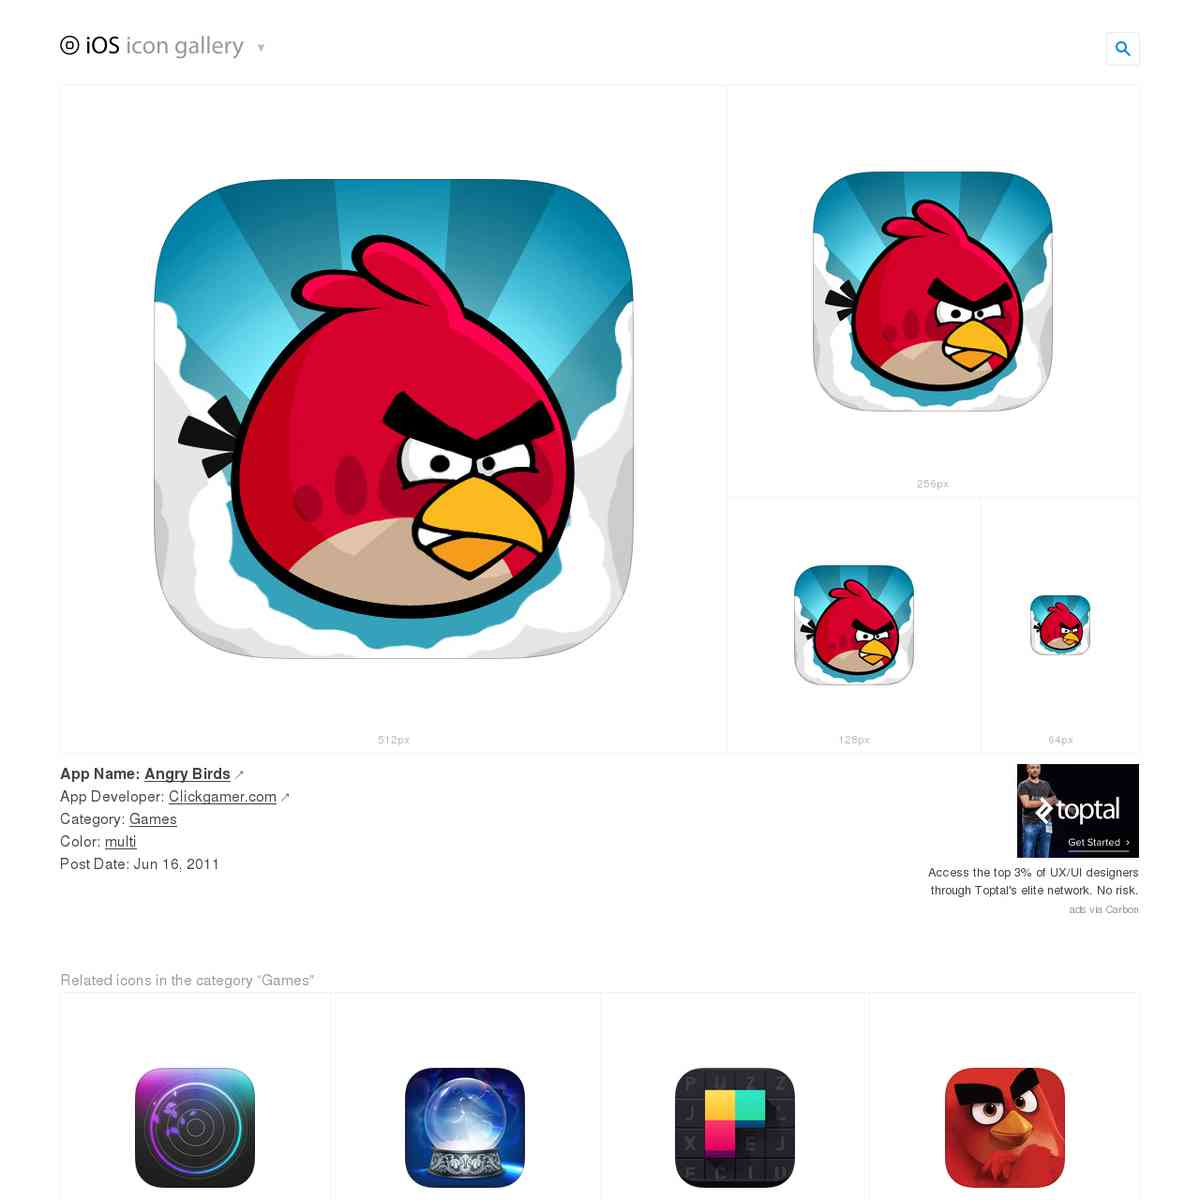 iosicongallery.com/games/angry-birds/